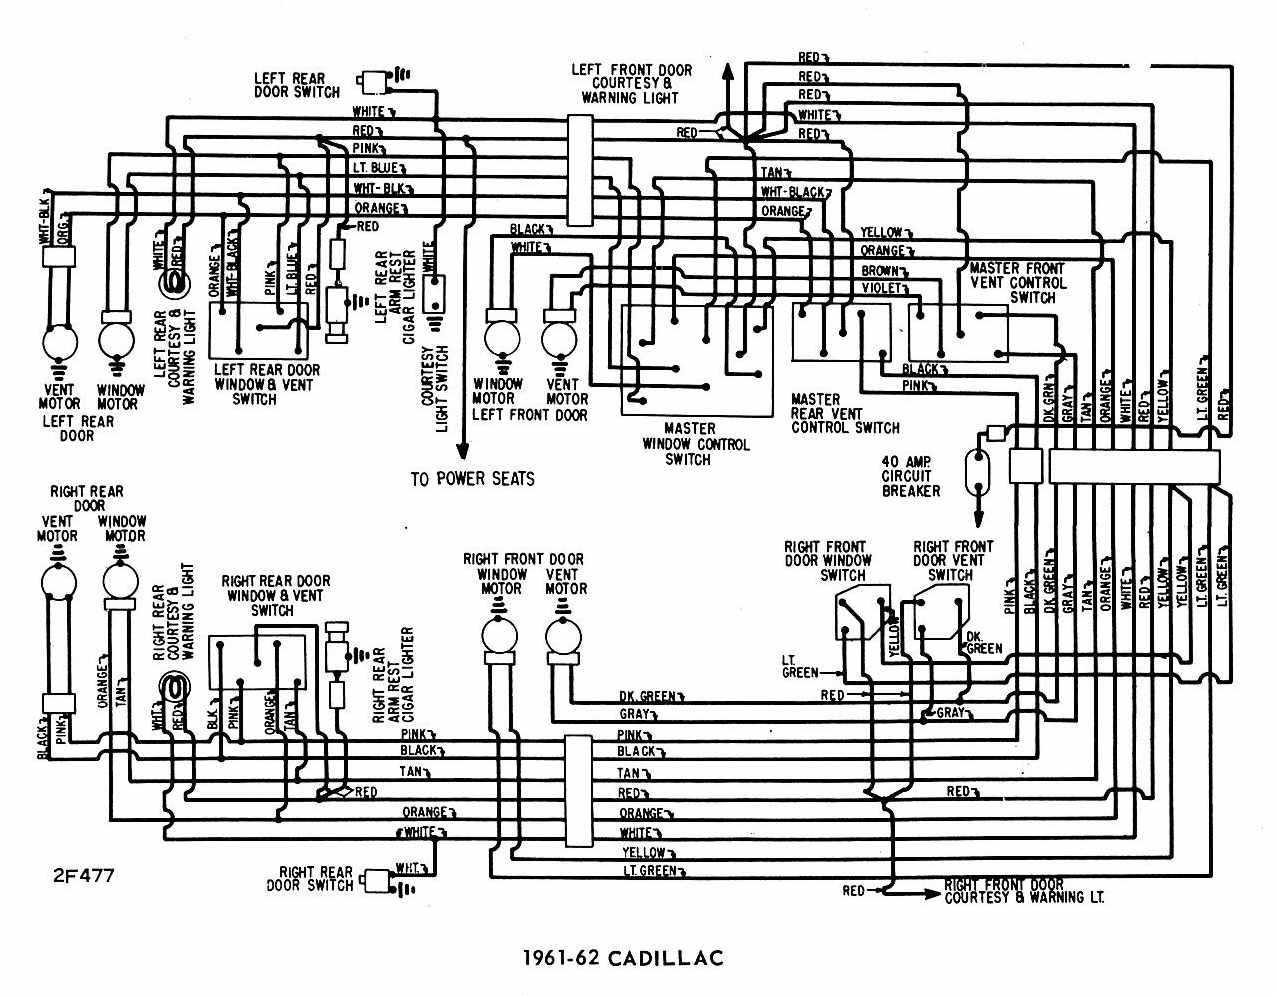 2008 Buick Enclave Stereo Wiring Diagram Will Be A 2012 Traverse 2005 Cadillac Sts Data Diagrams 2011 Chevorlet Chevy Malibu Alt